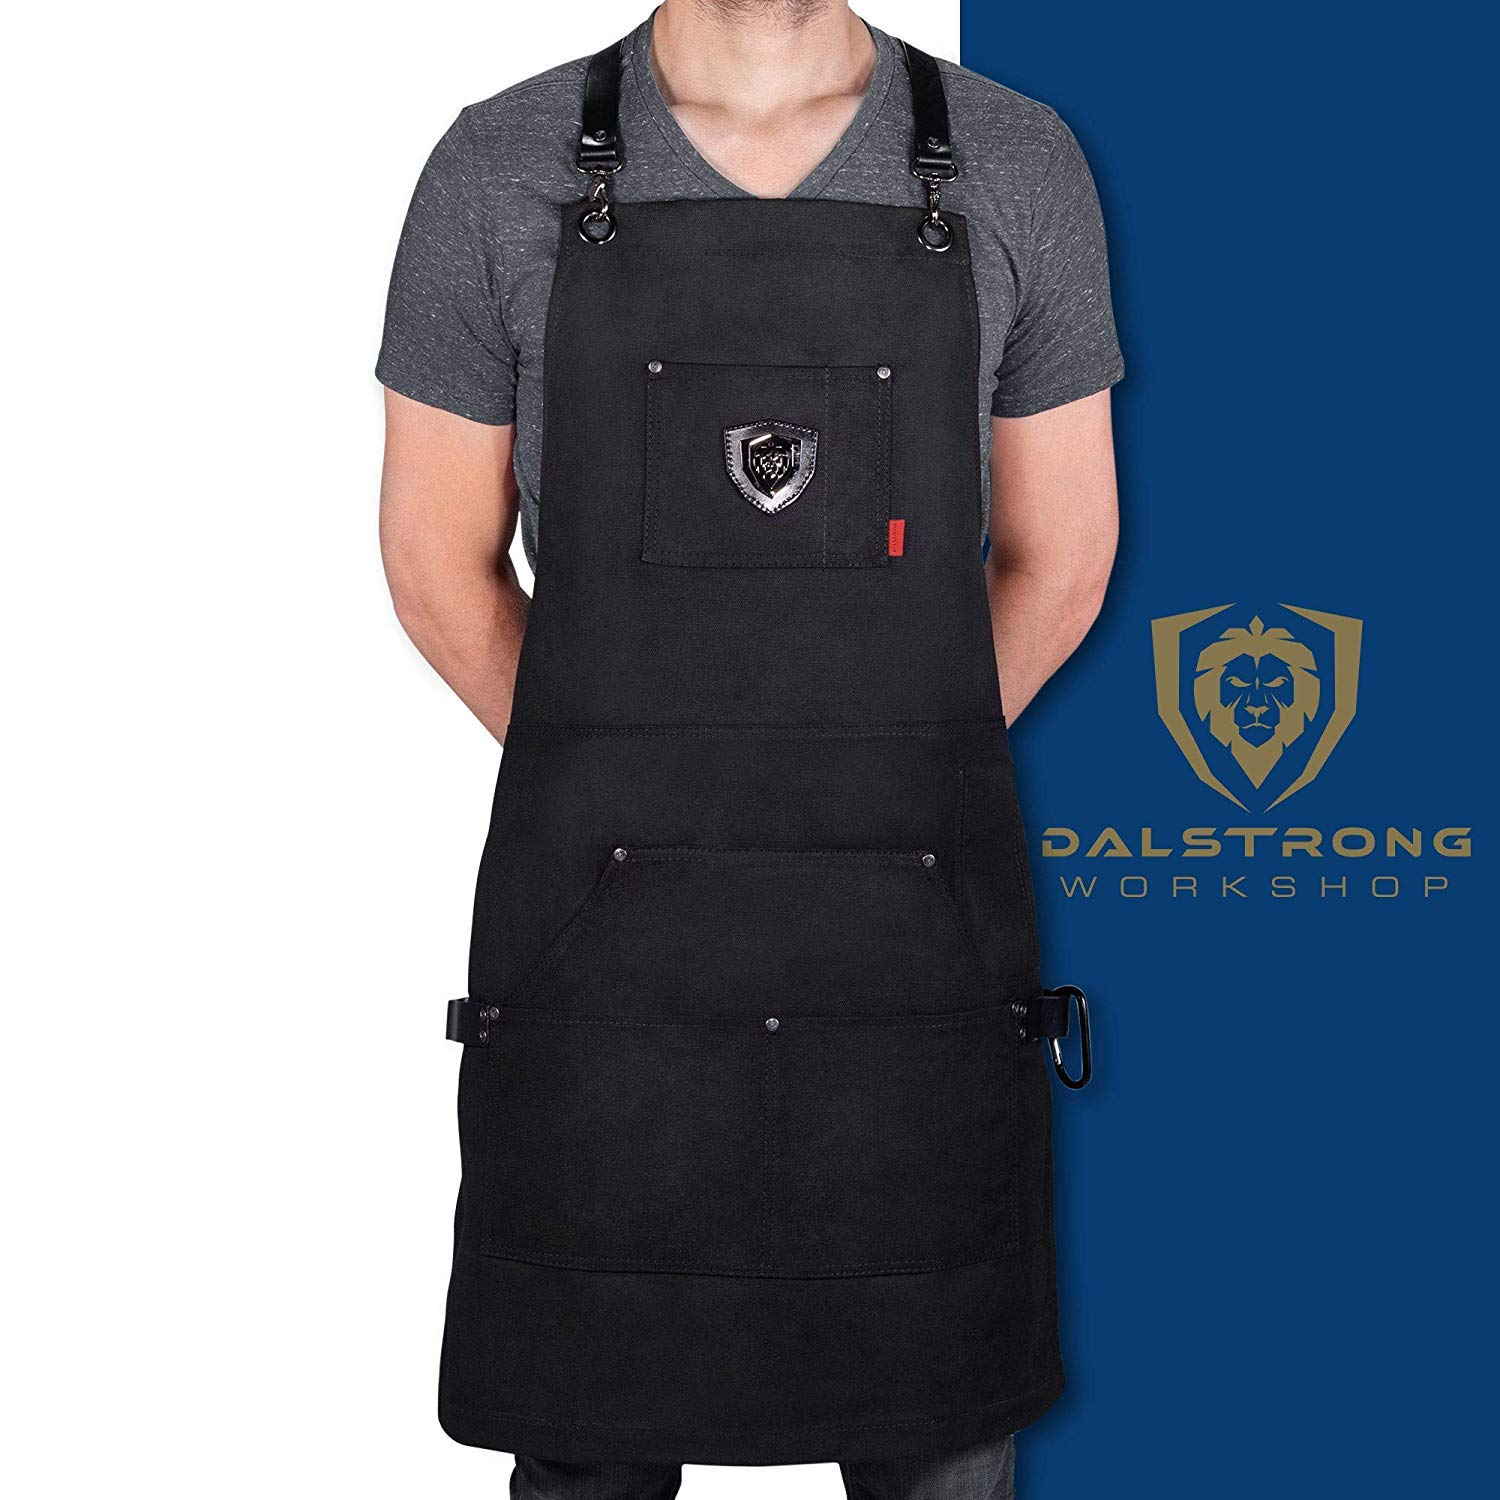 """Dalstrong Professional Chef's Kitchen Apron - Sous Team 6"""" - Heavy Duty Waxed Canvas - 5 Storage Pockets + Towel & Tong Loop - Liquid Repellent Coating - Genuine Leather Accents - Adjustable Straps"""